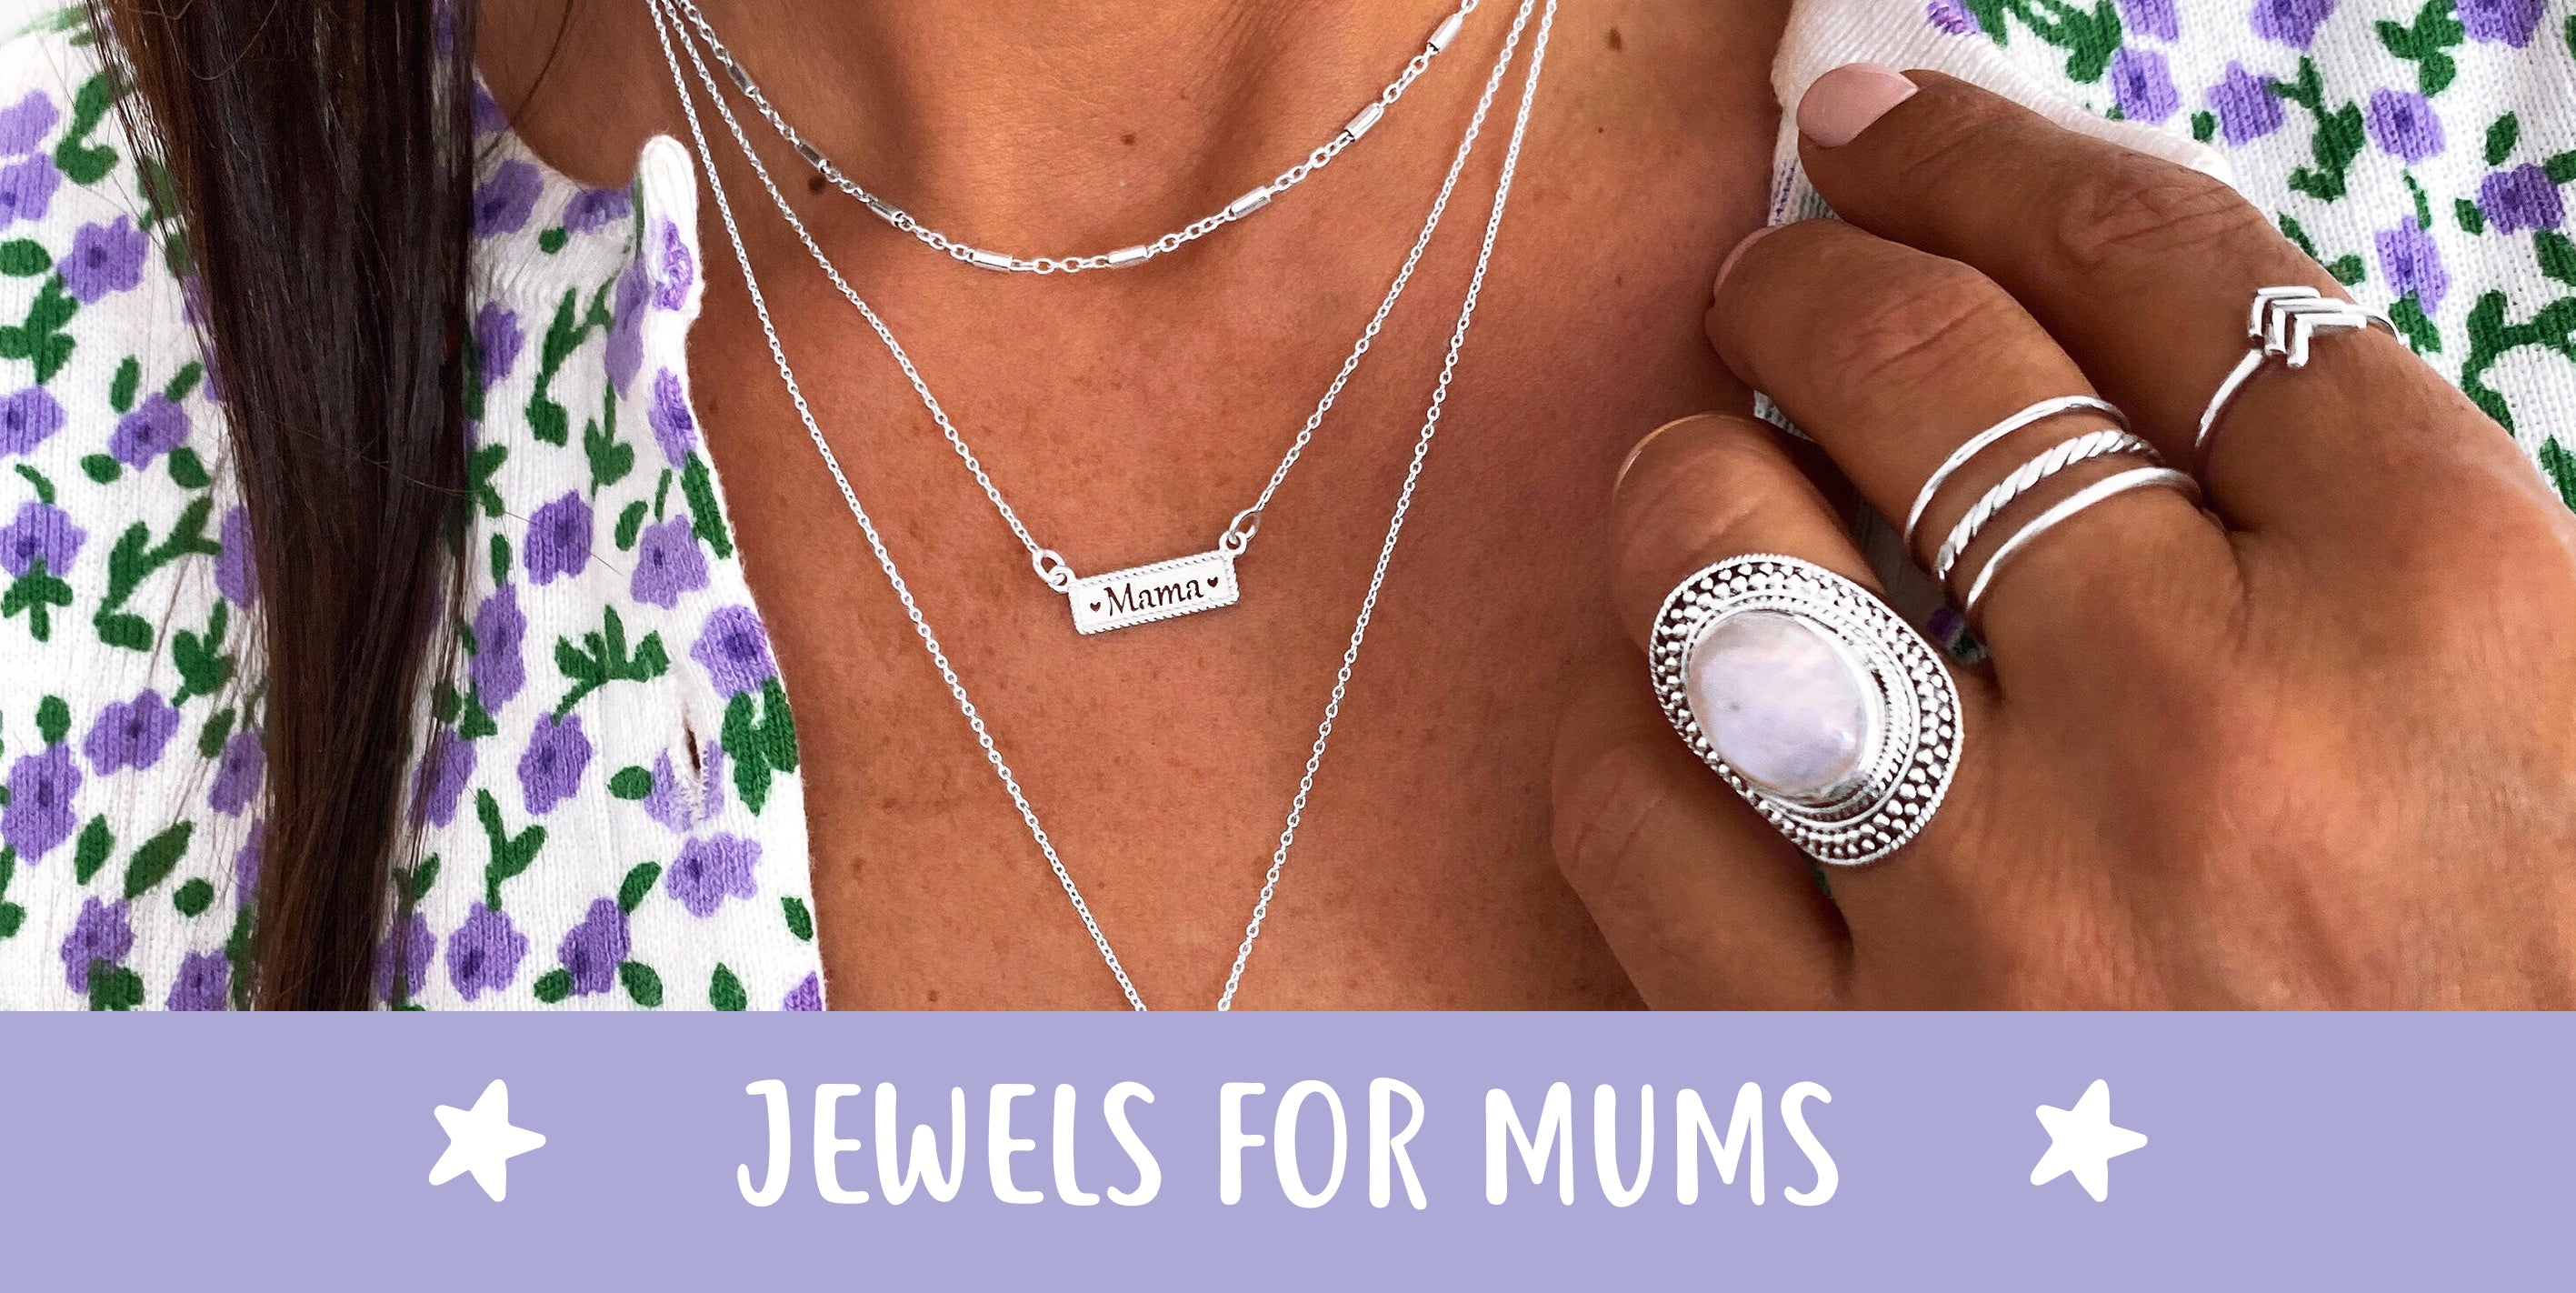 Silver jewels for mum